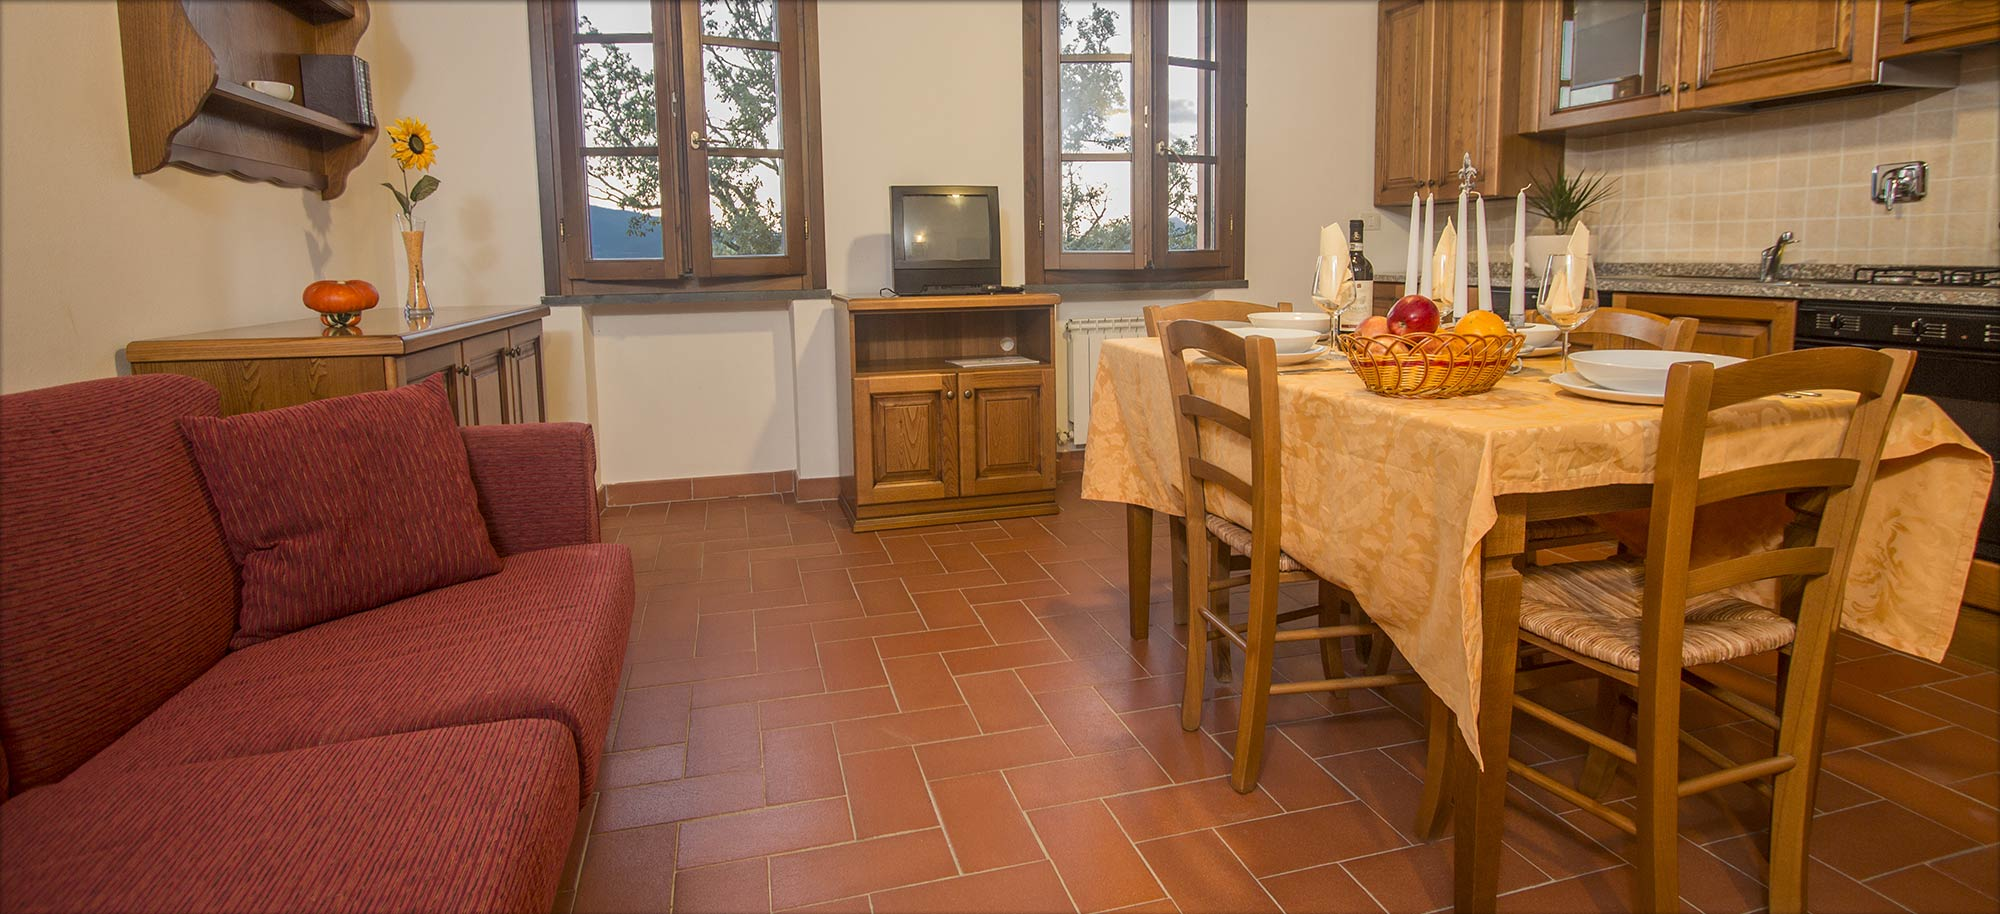 Corte Tommasi - Rates - Tuscany apartments